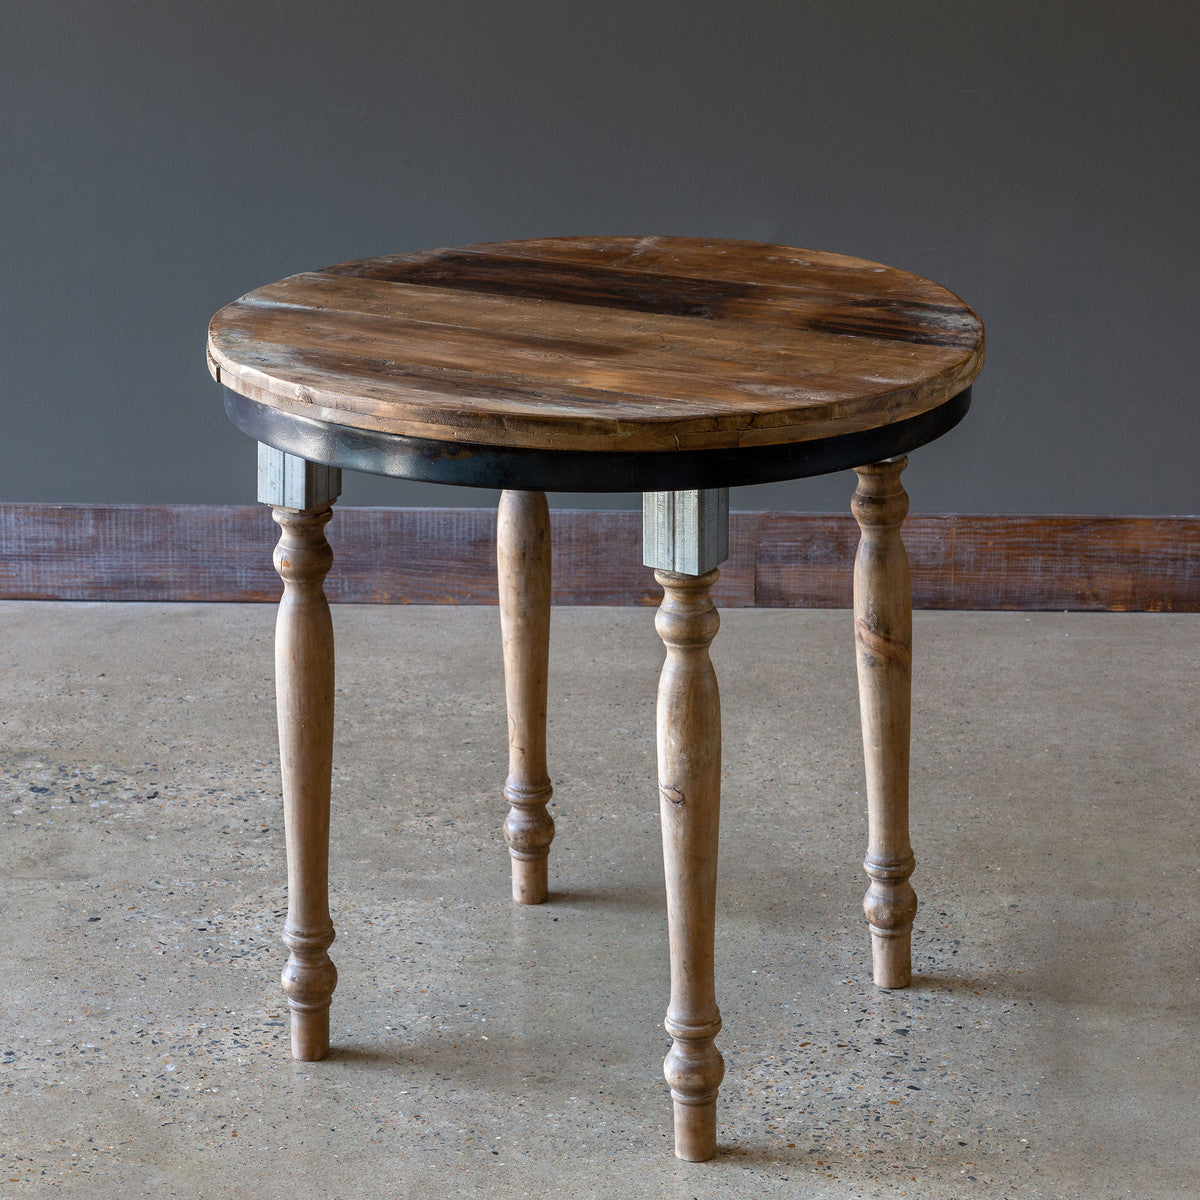 Lovecup Round Wood Display Table With Metal Apron L040 Lovecup